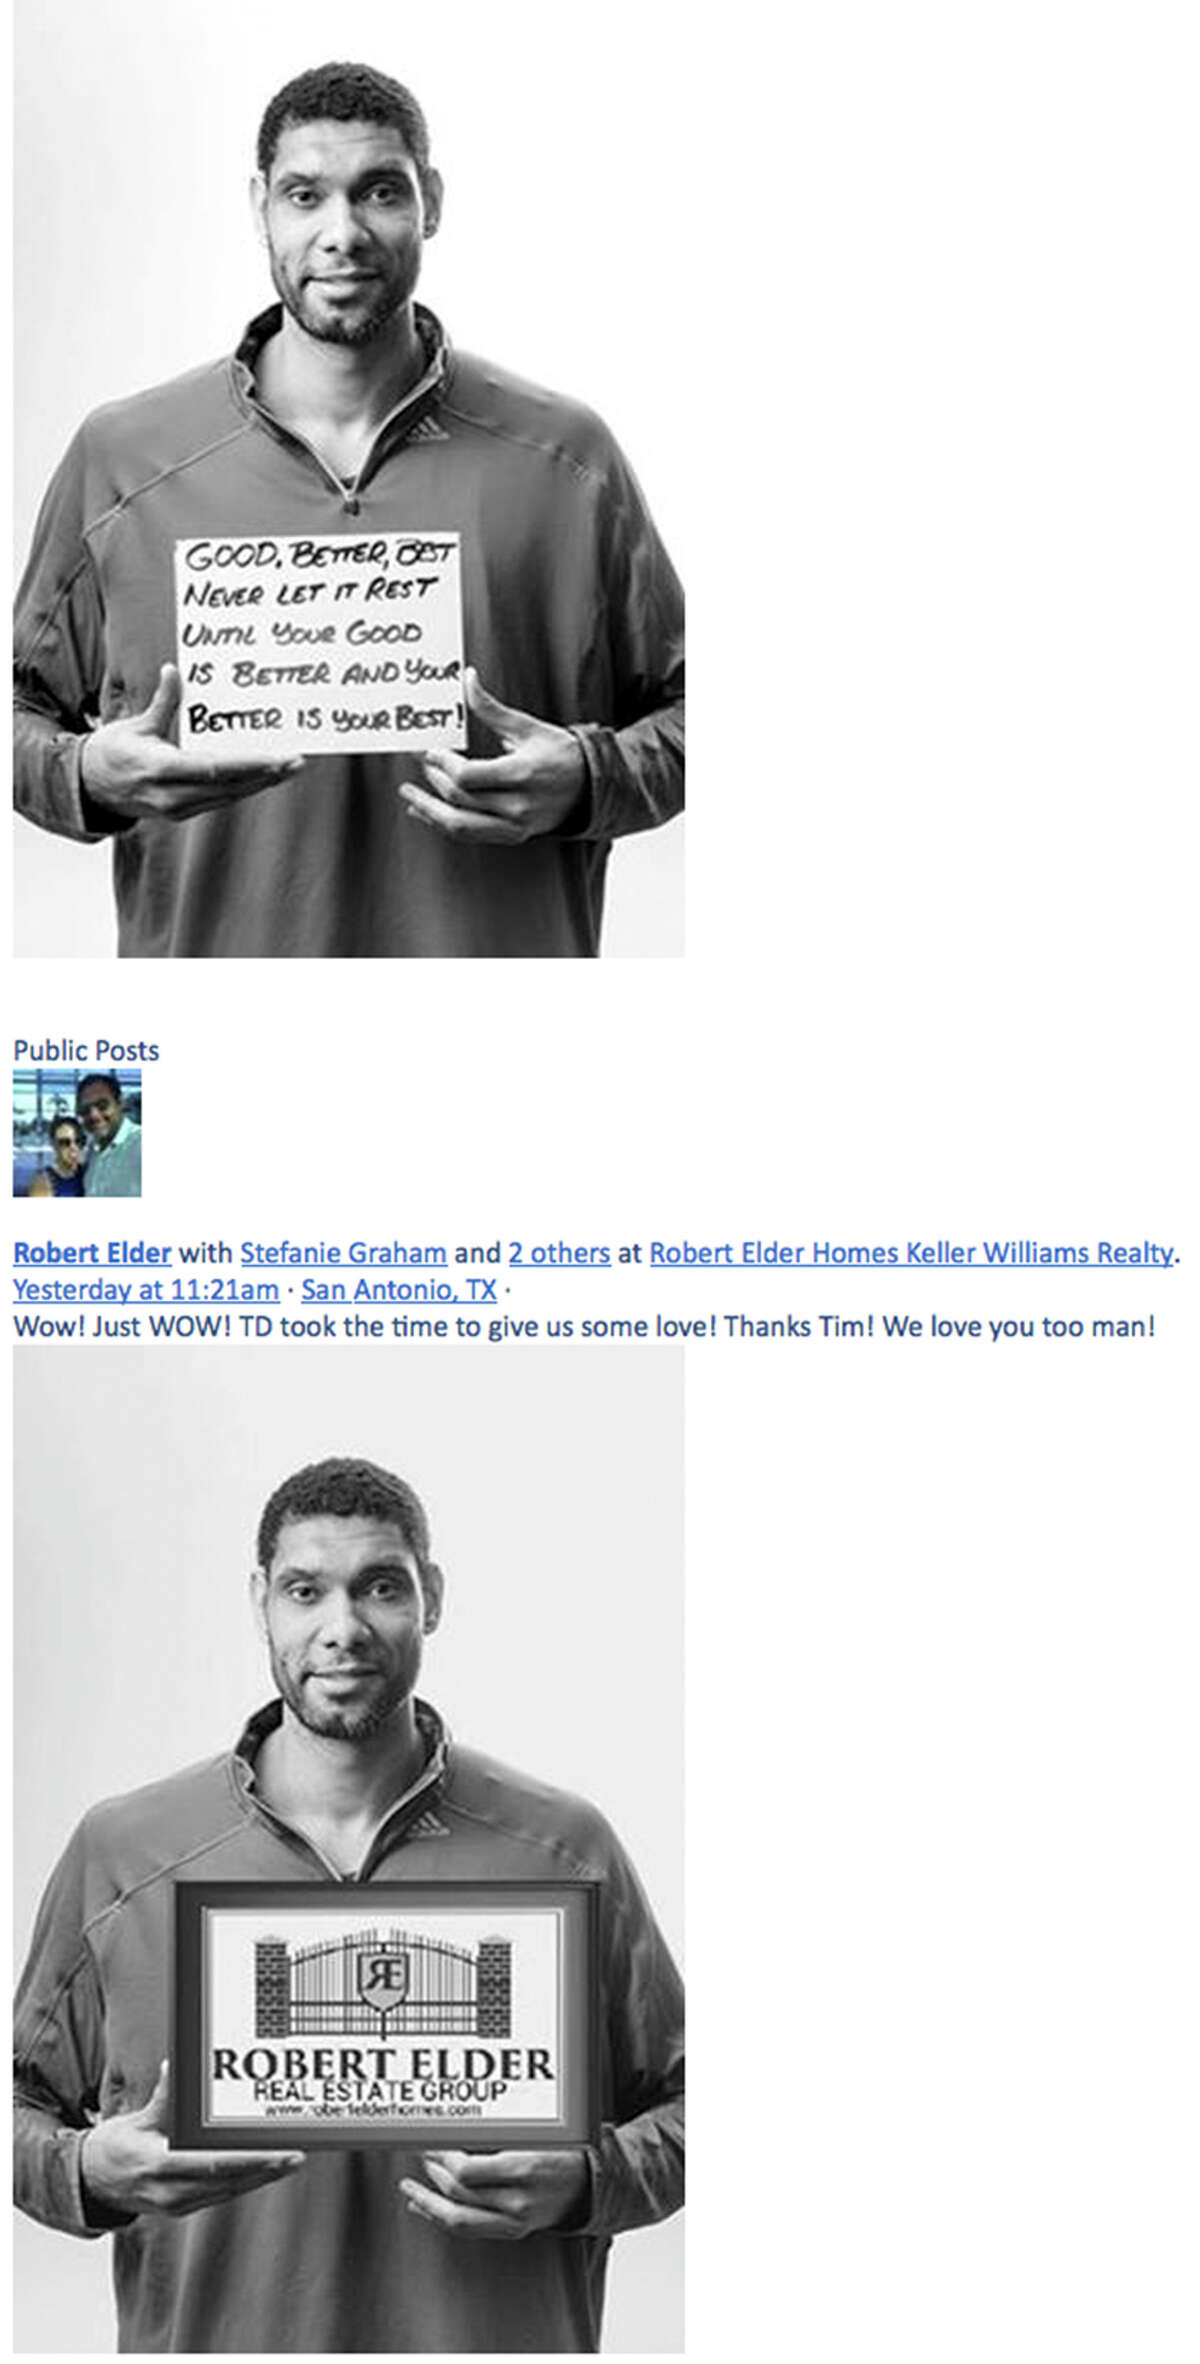 """Photographer Sarah Brooke Lyons photographed Tim Duncan for her ?""""1005 Faces?"""" project (top photo), which featured subjects holding a piece of placard inscribed with a short personal message. According to a lawsuit filed by Duncan Friday, his image from that photograph was misappropriated and posted on the Facebook page of Robert Elder Real Estate Group (bottom photo)."""